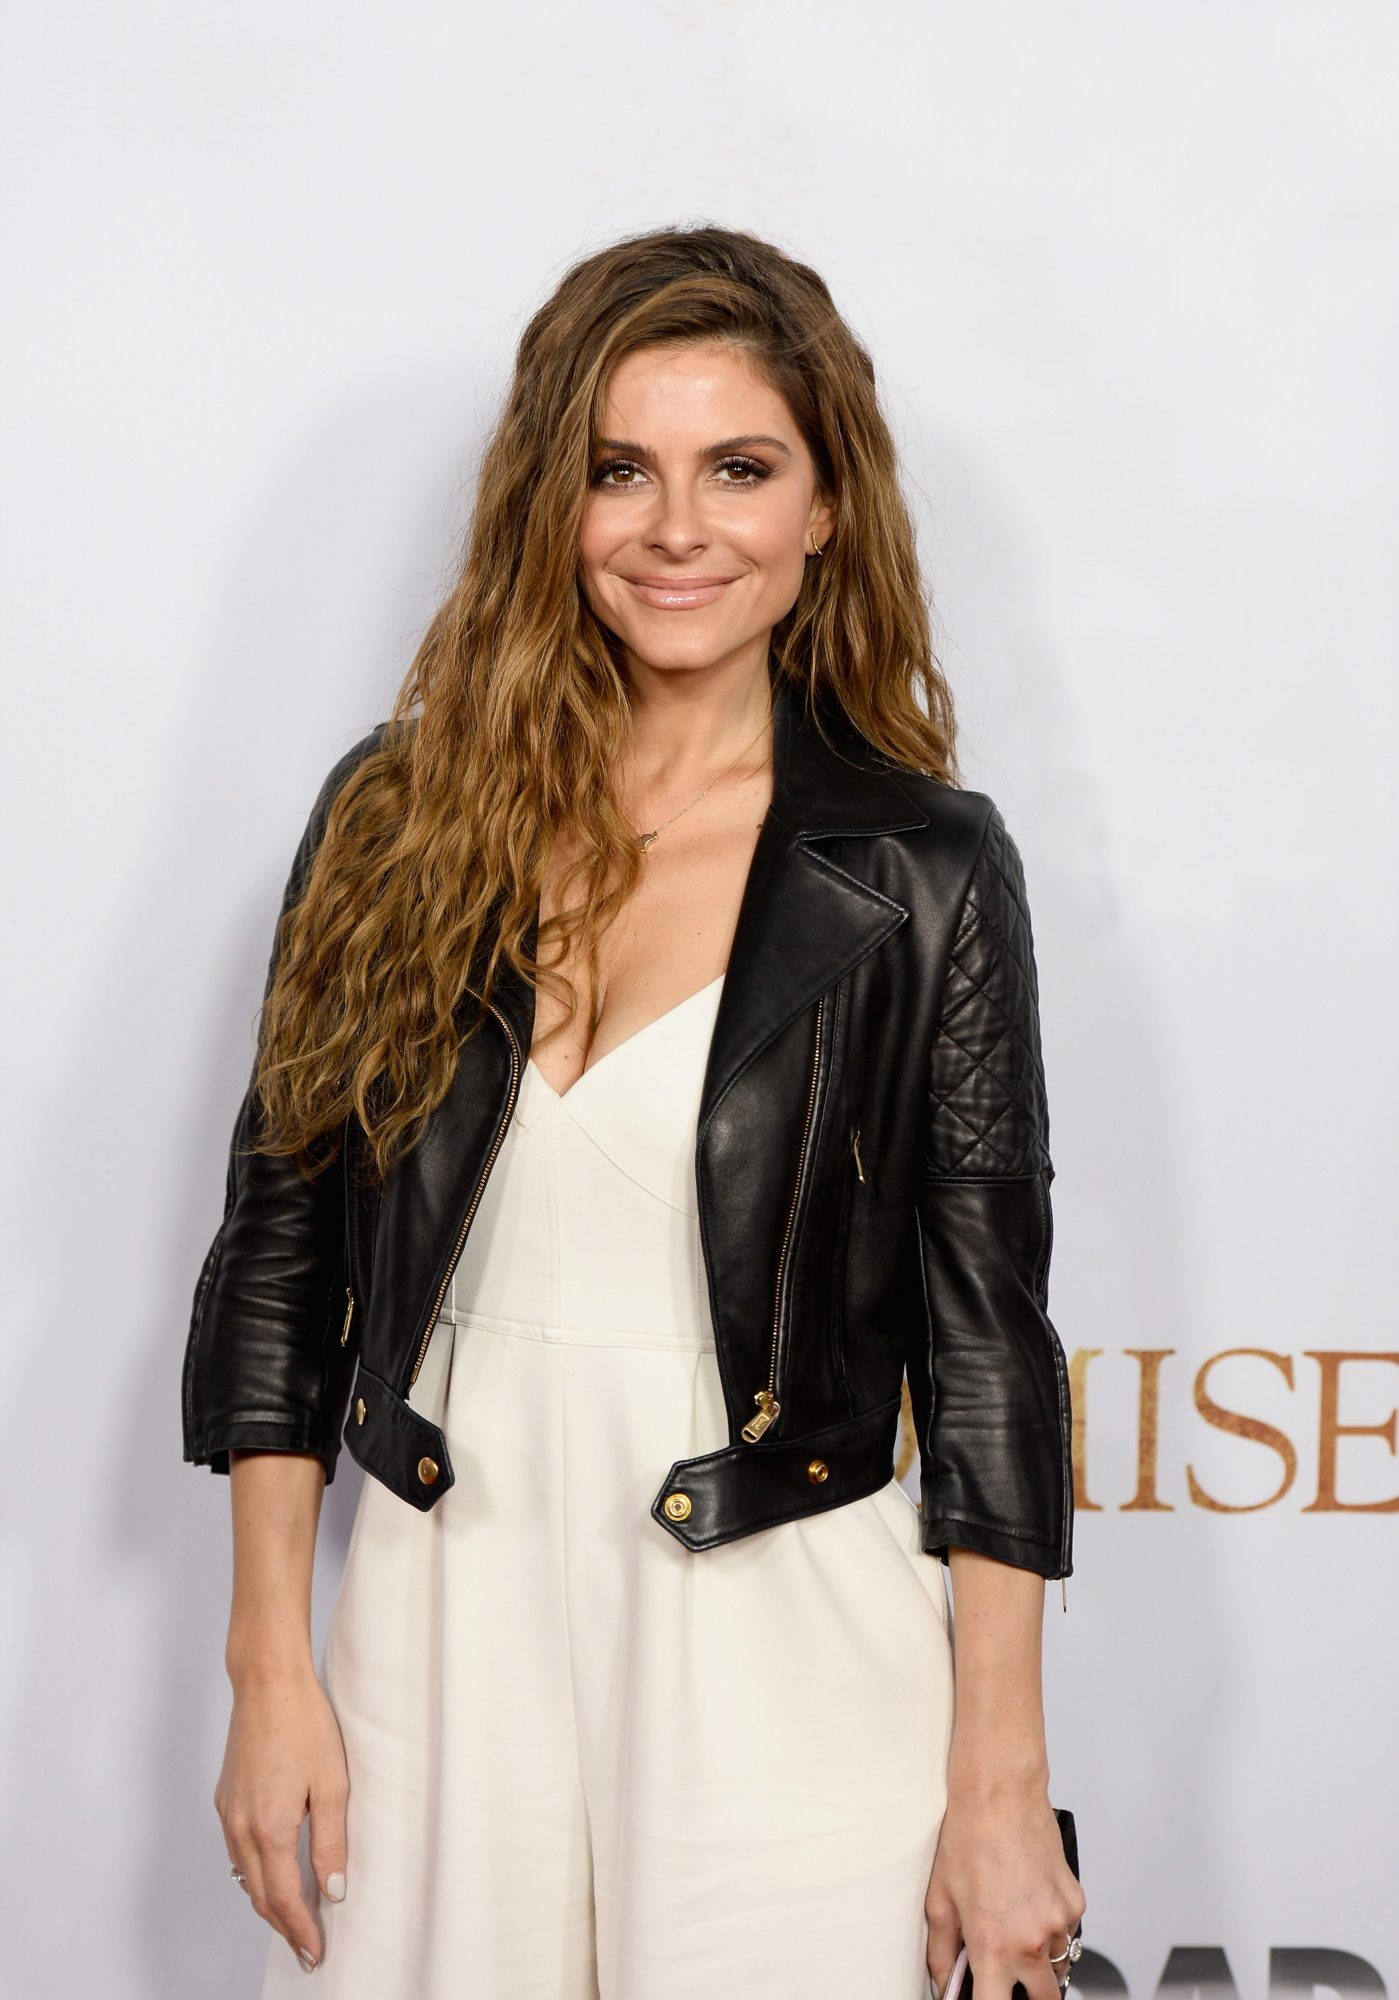 Maria Menounos Shares Video Taken 24 Hours After Her Life-Saving Brain Surgery